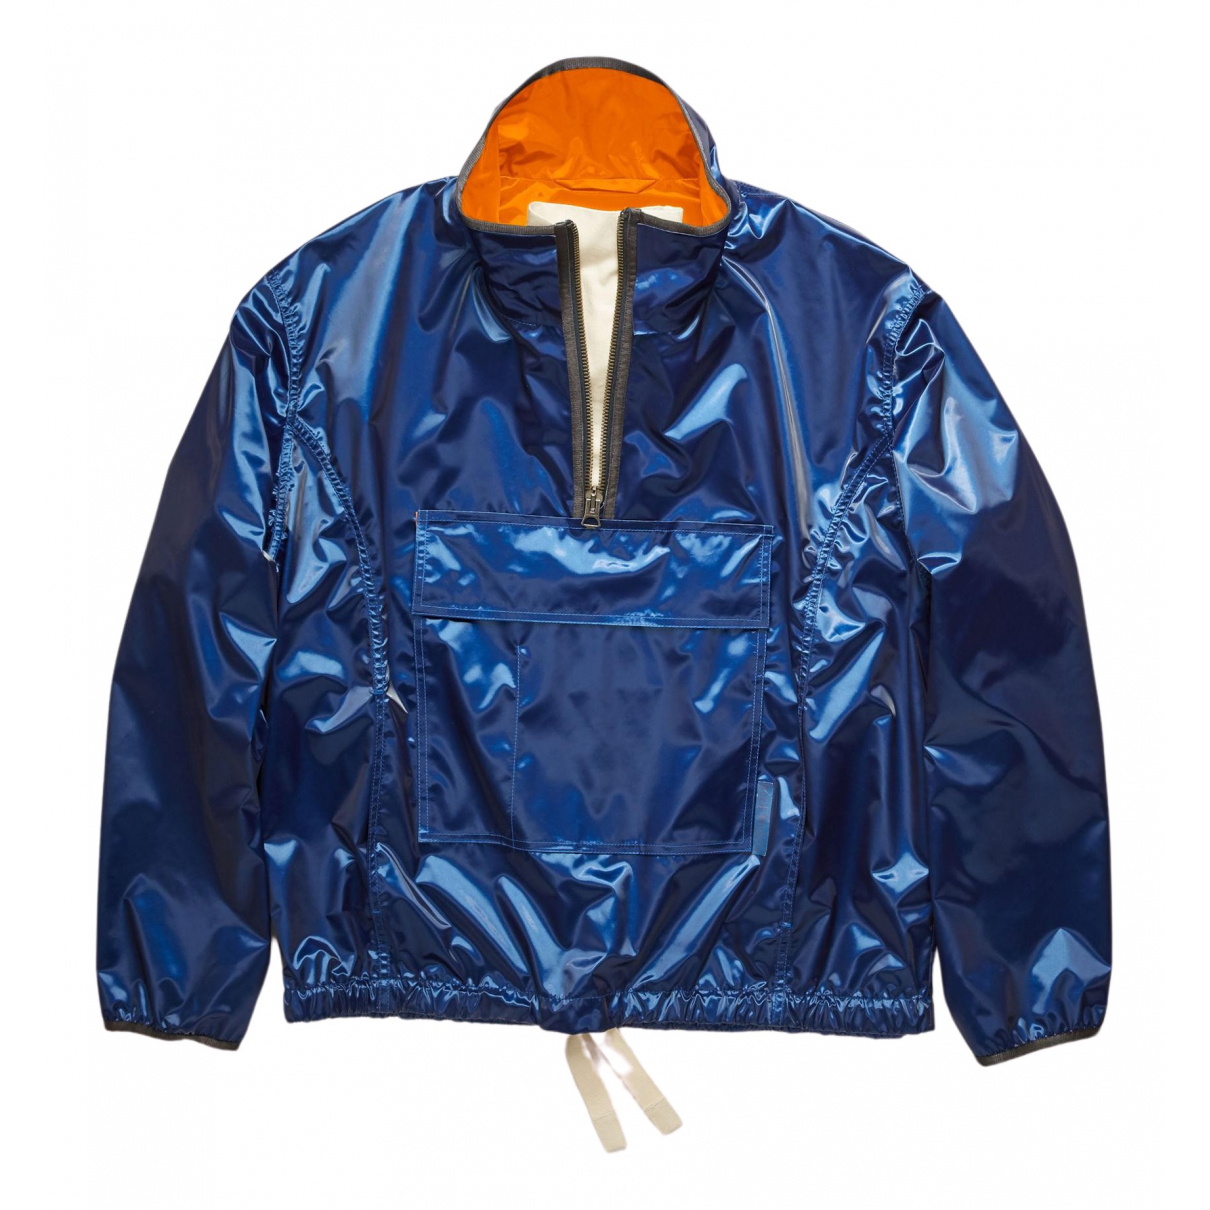 Acne Studios N Blue jacket  for Men M International